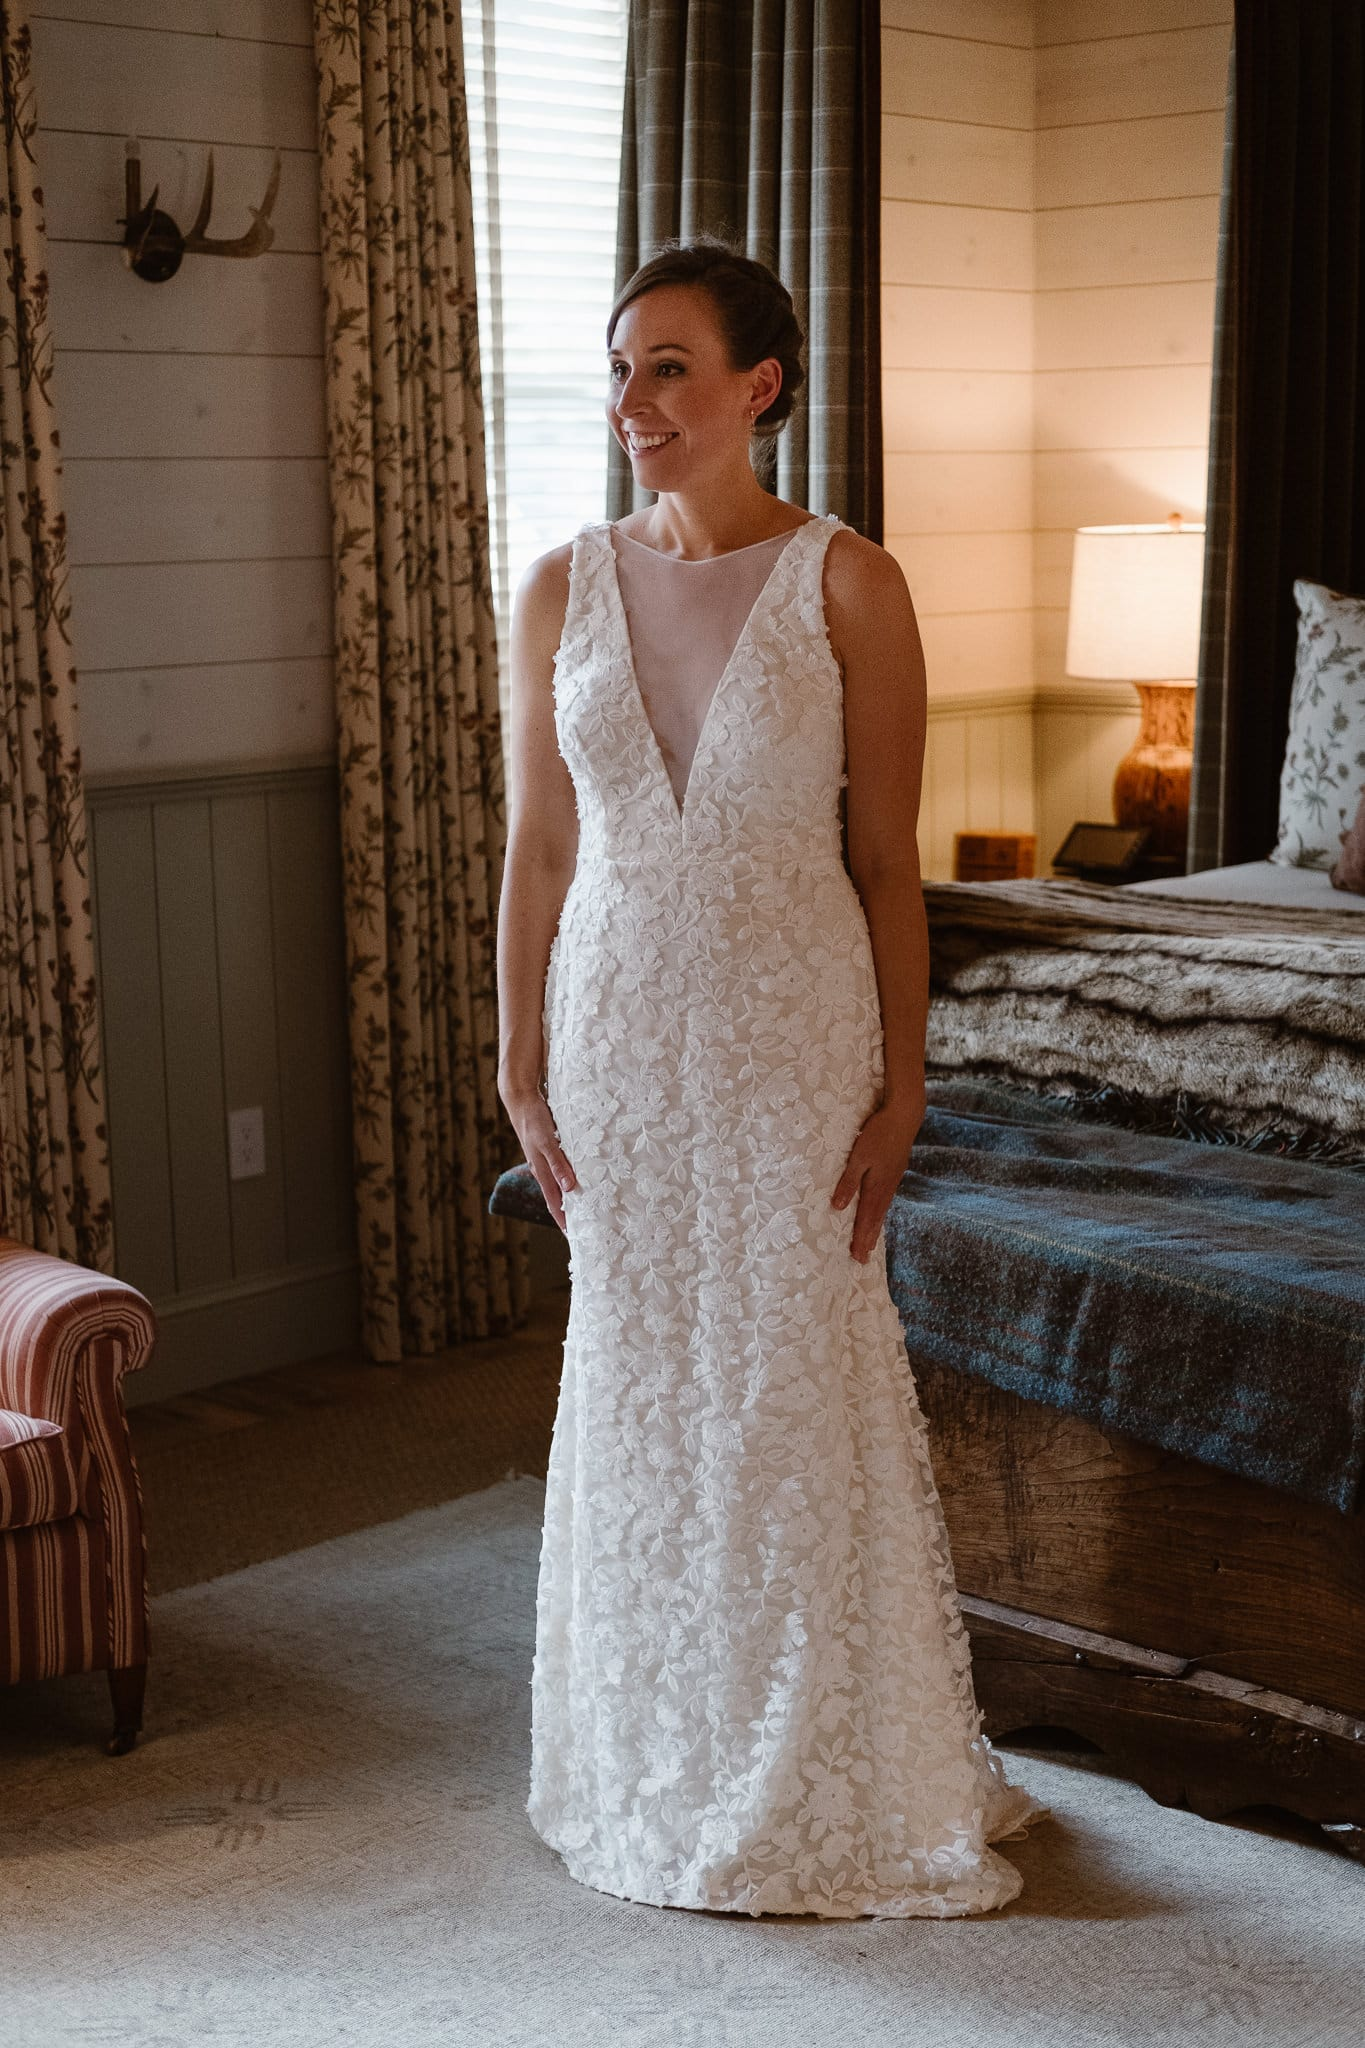 Crested Butte Wedding Photographer, Scarp Ridge Lodge intimate elopement, bride getting ready at luxury mountain lodge